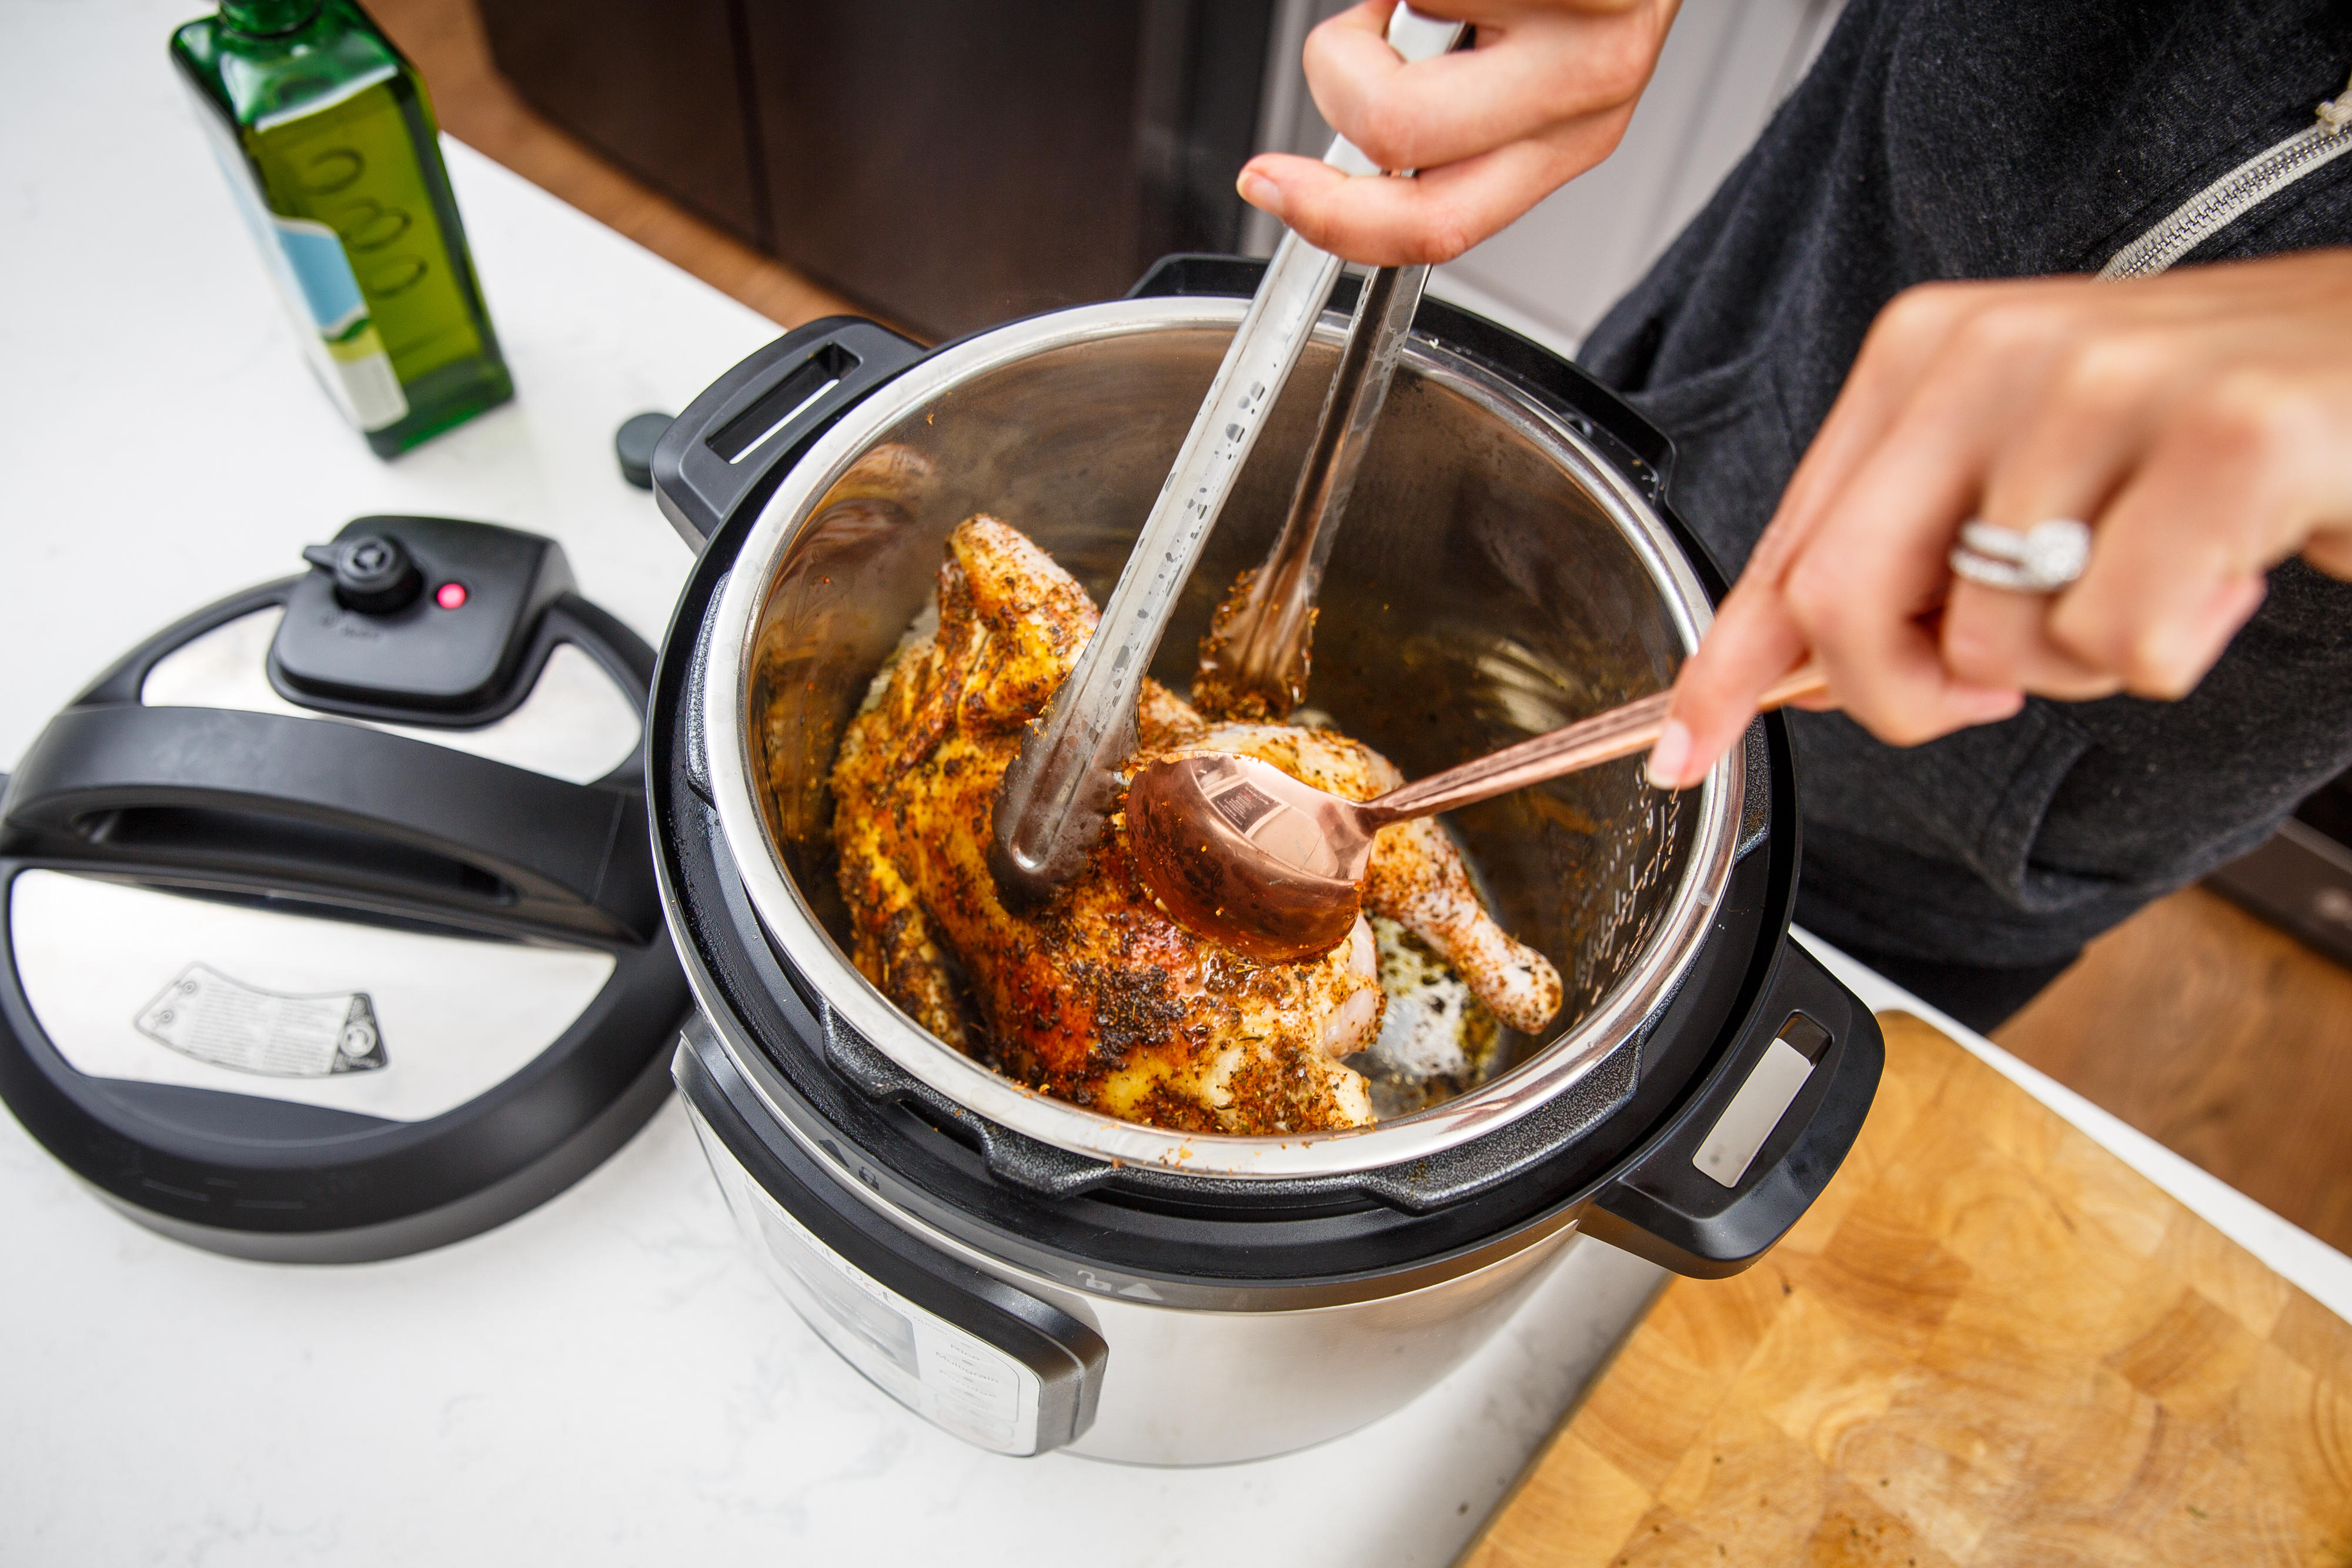 instant-pot-sf-smart-home-5-8-18-7723